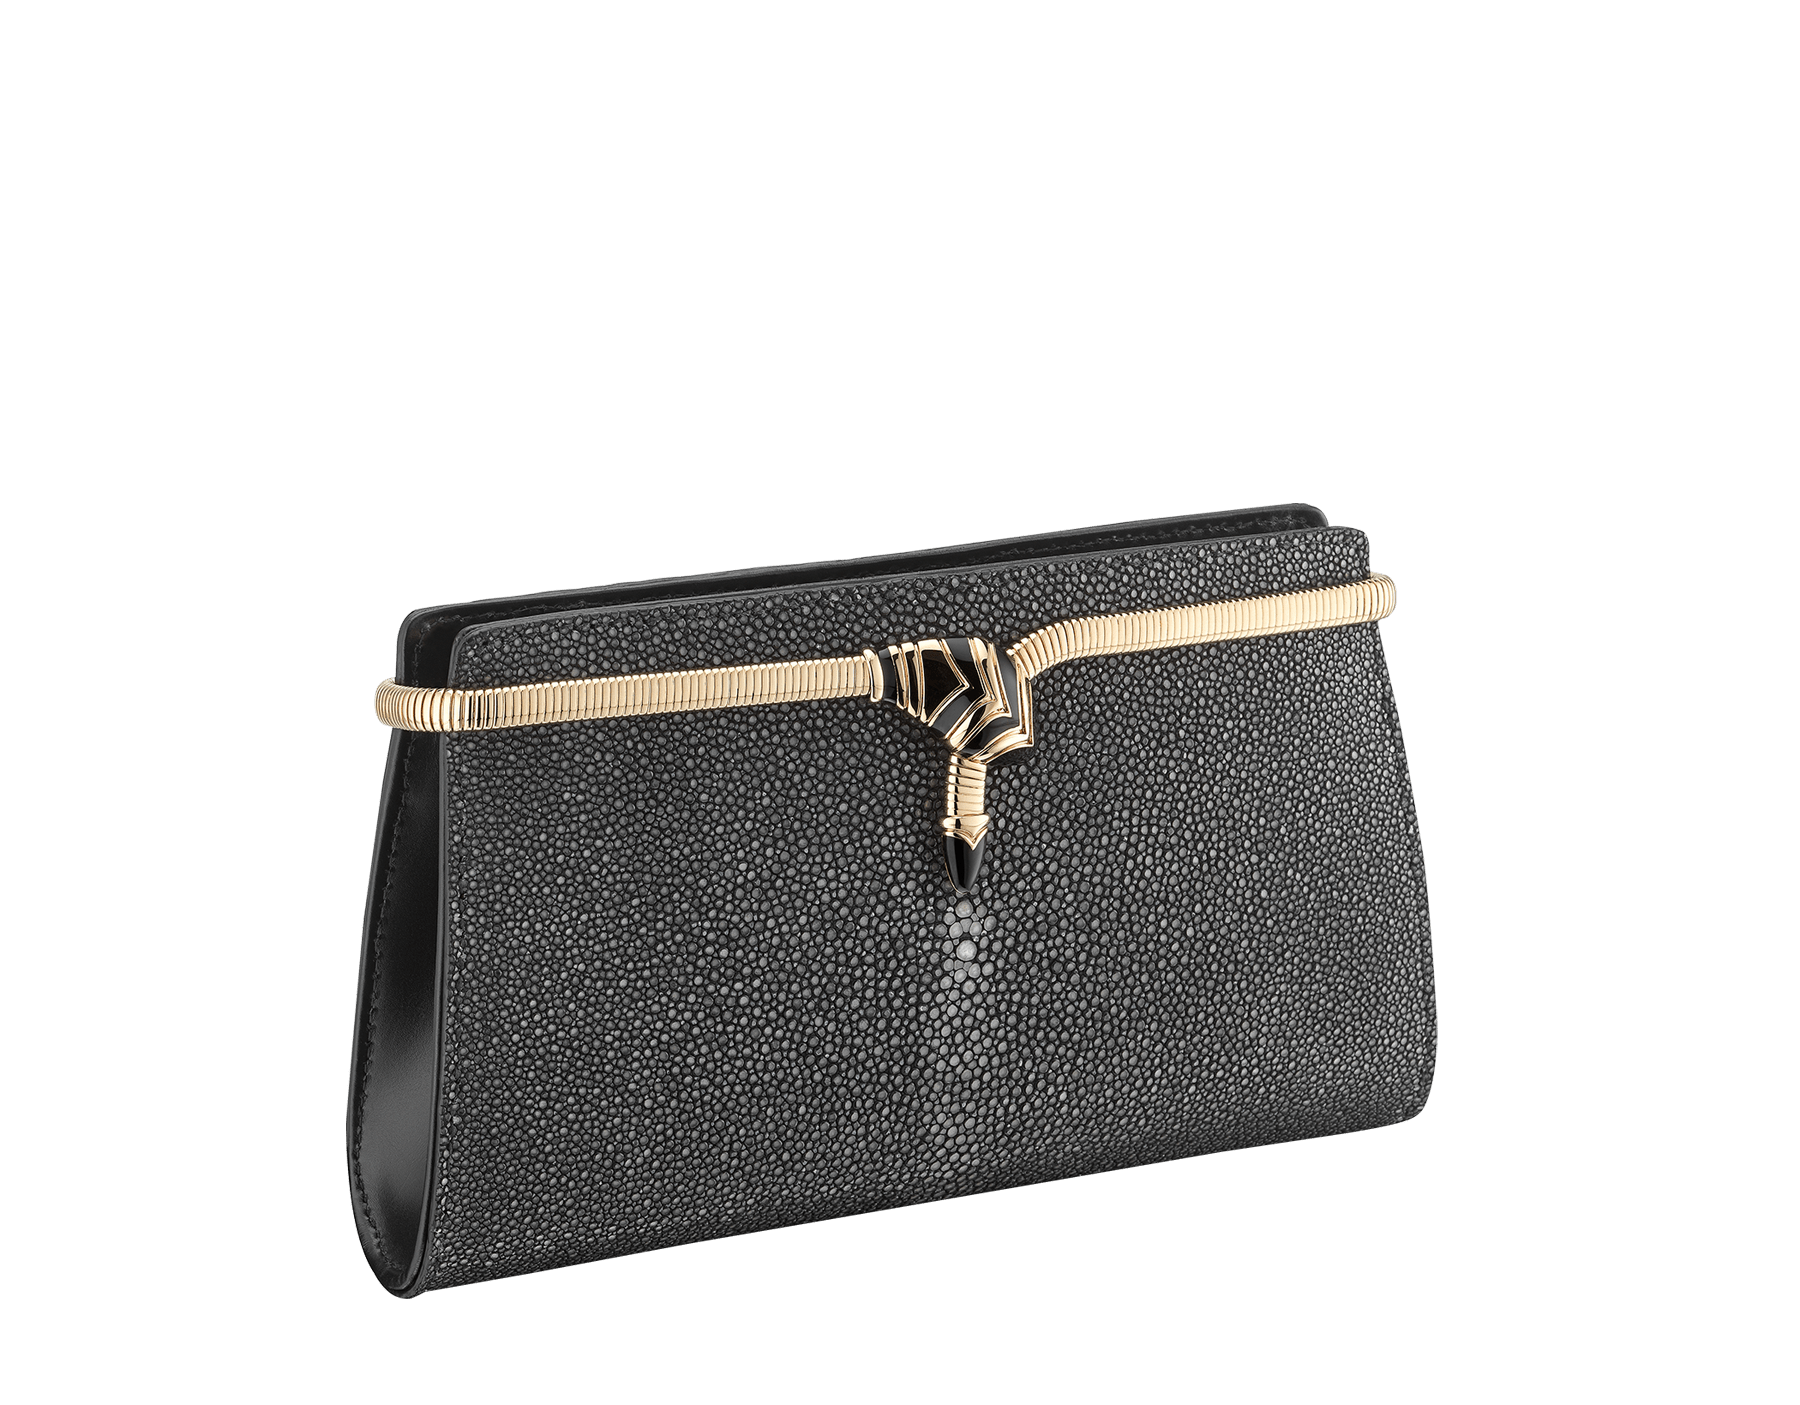 Serpenti Tubogas clutch in black galuchat skin and calf leather. Brass light rose gold plated snake body-shaped frame closure with black enamel. 526-001-0671S image 2